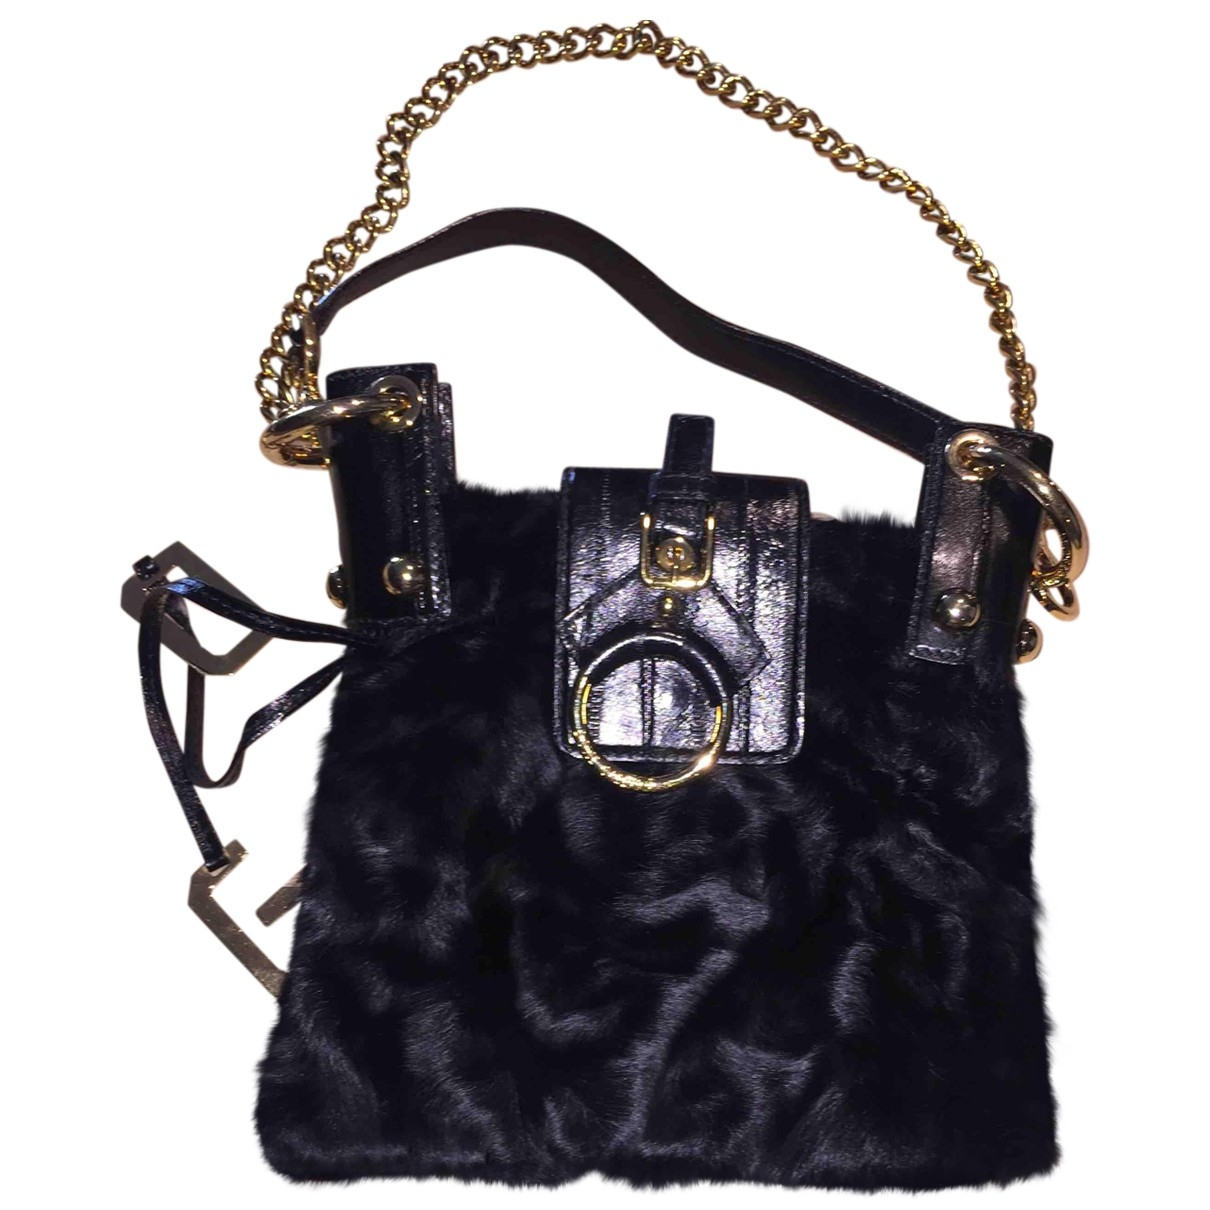 Dolce & Gabbana \N Clutch in  Schwarz Kalbsleder in Pony-Optik